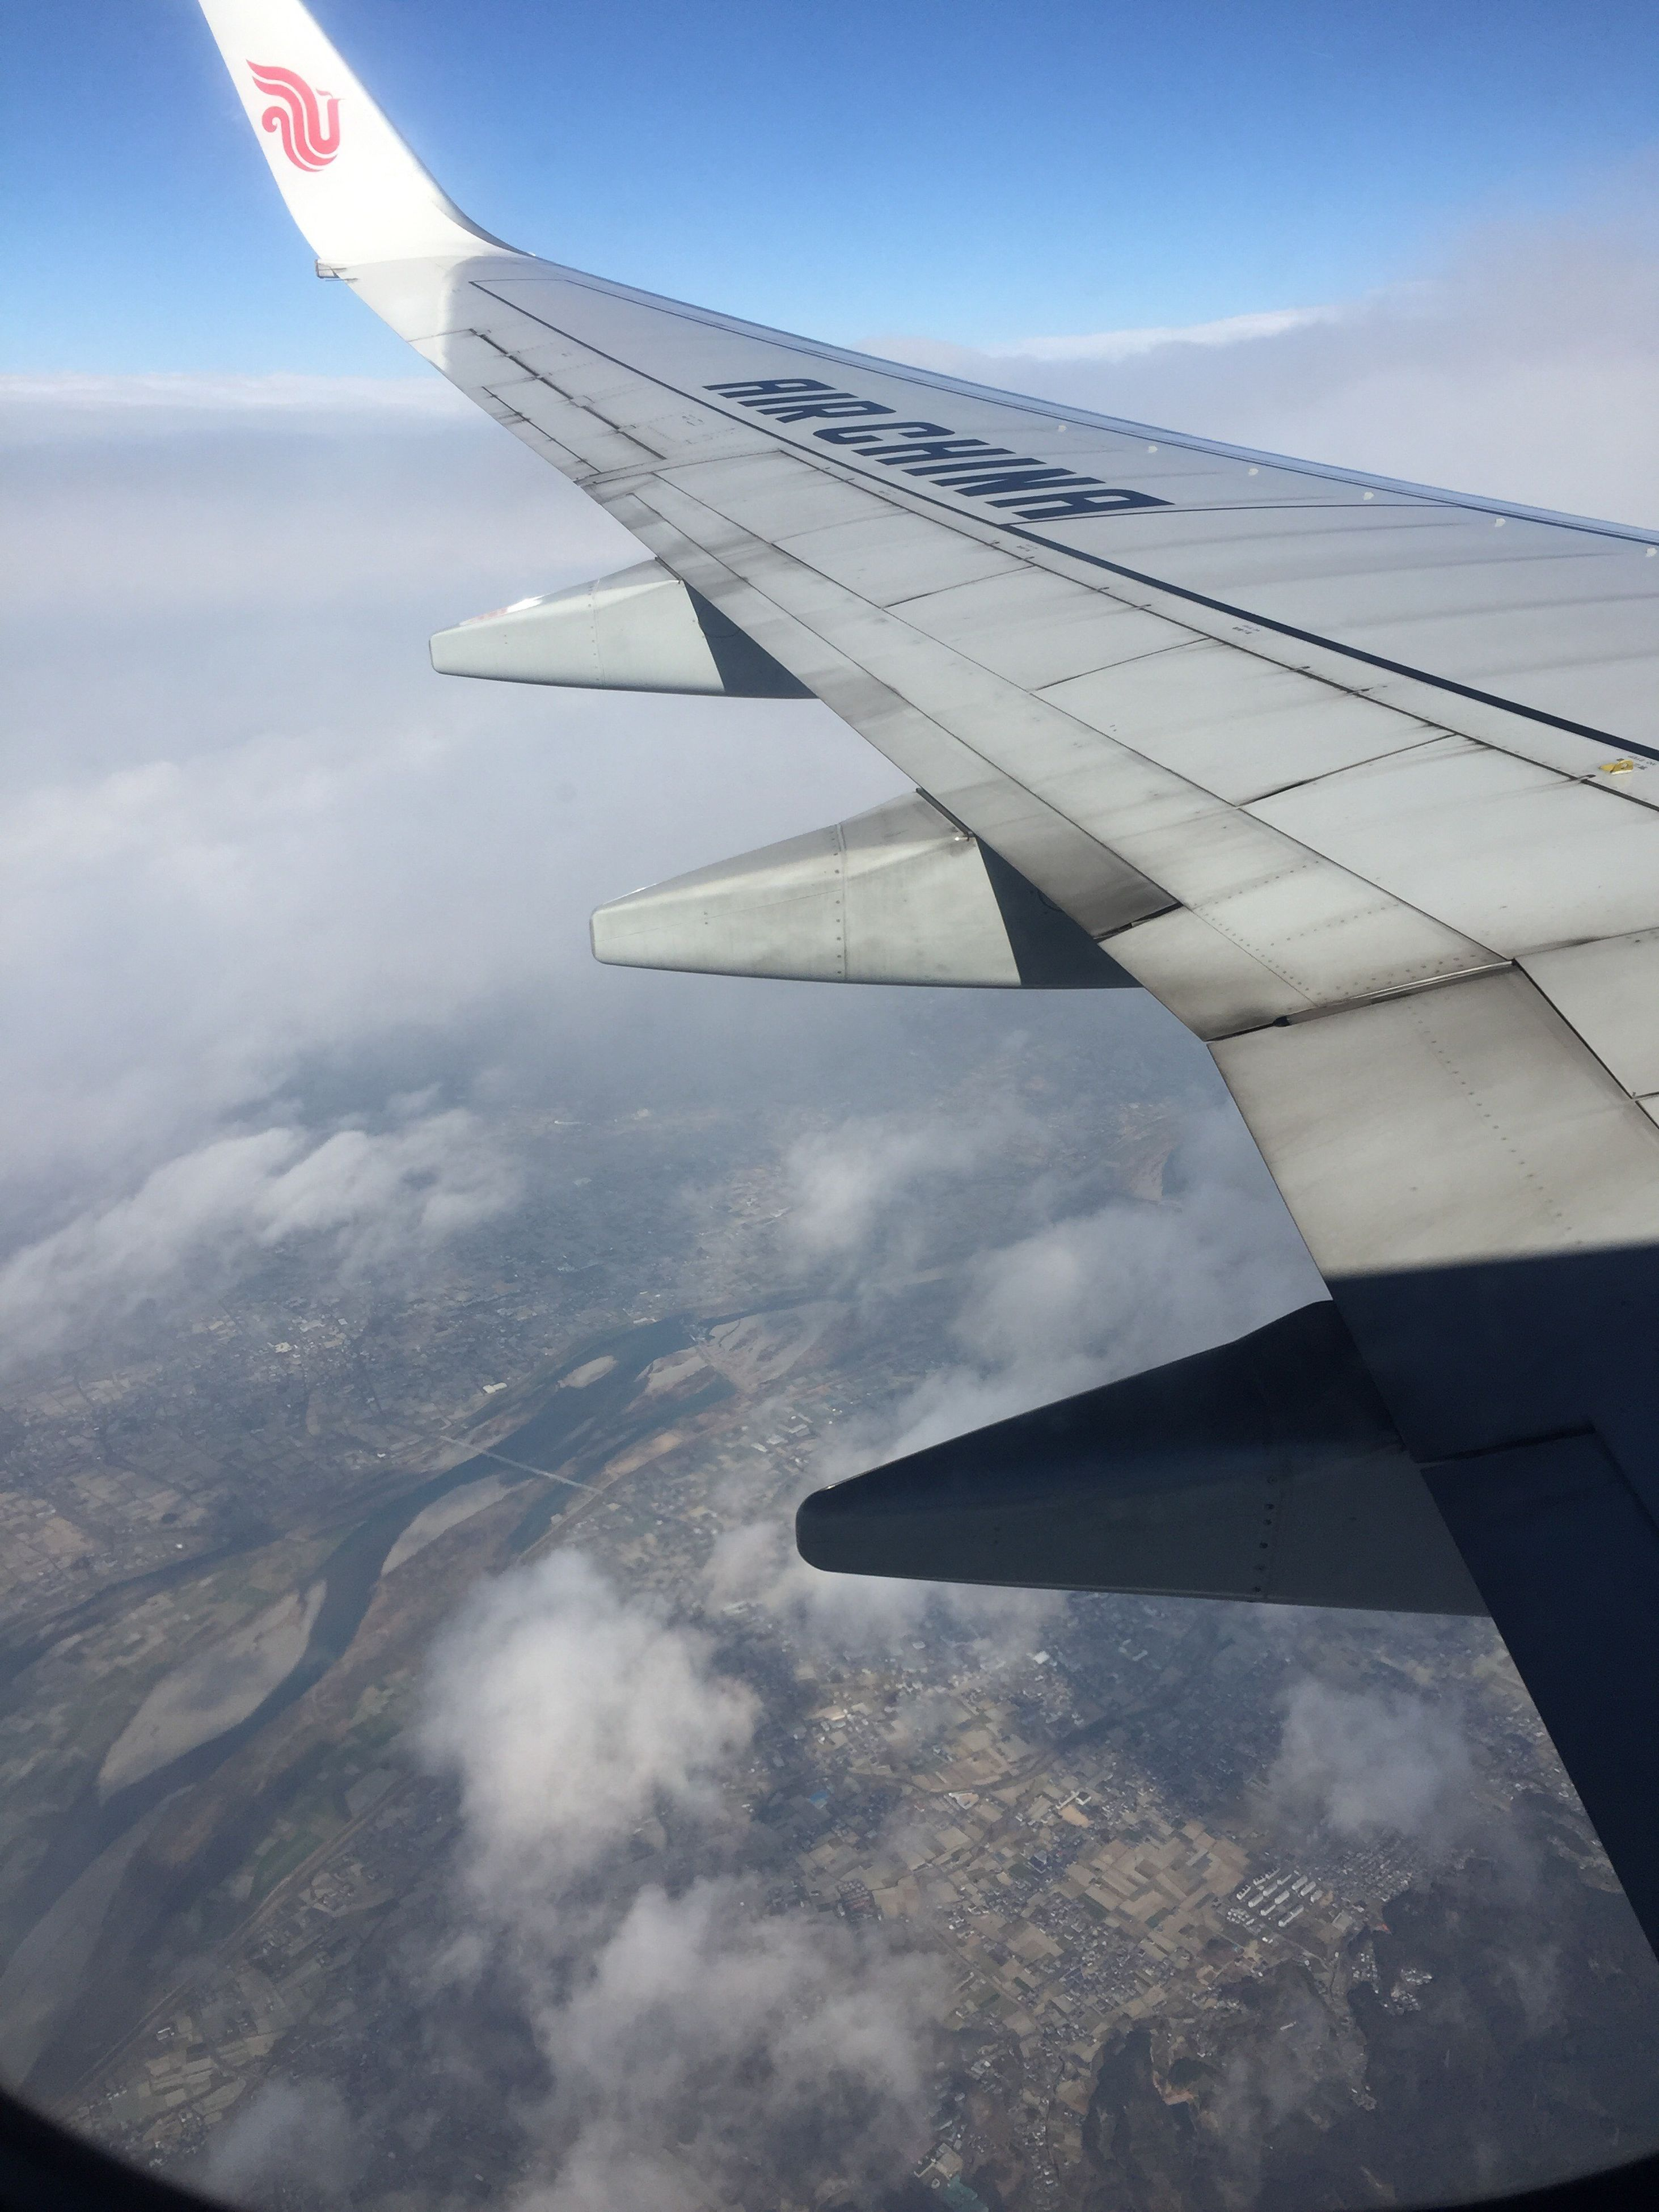 airplane, aircraft wing, transportation, flying, journey, cloud - sky, sky, airplane wing, travel, air vehicle, mode of transport, aerial view, aeroplane, aircraft, no people, day, public transportation, nature, outdoors, close-up